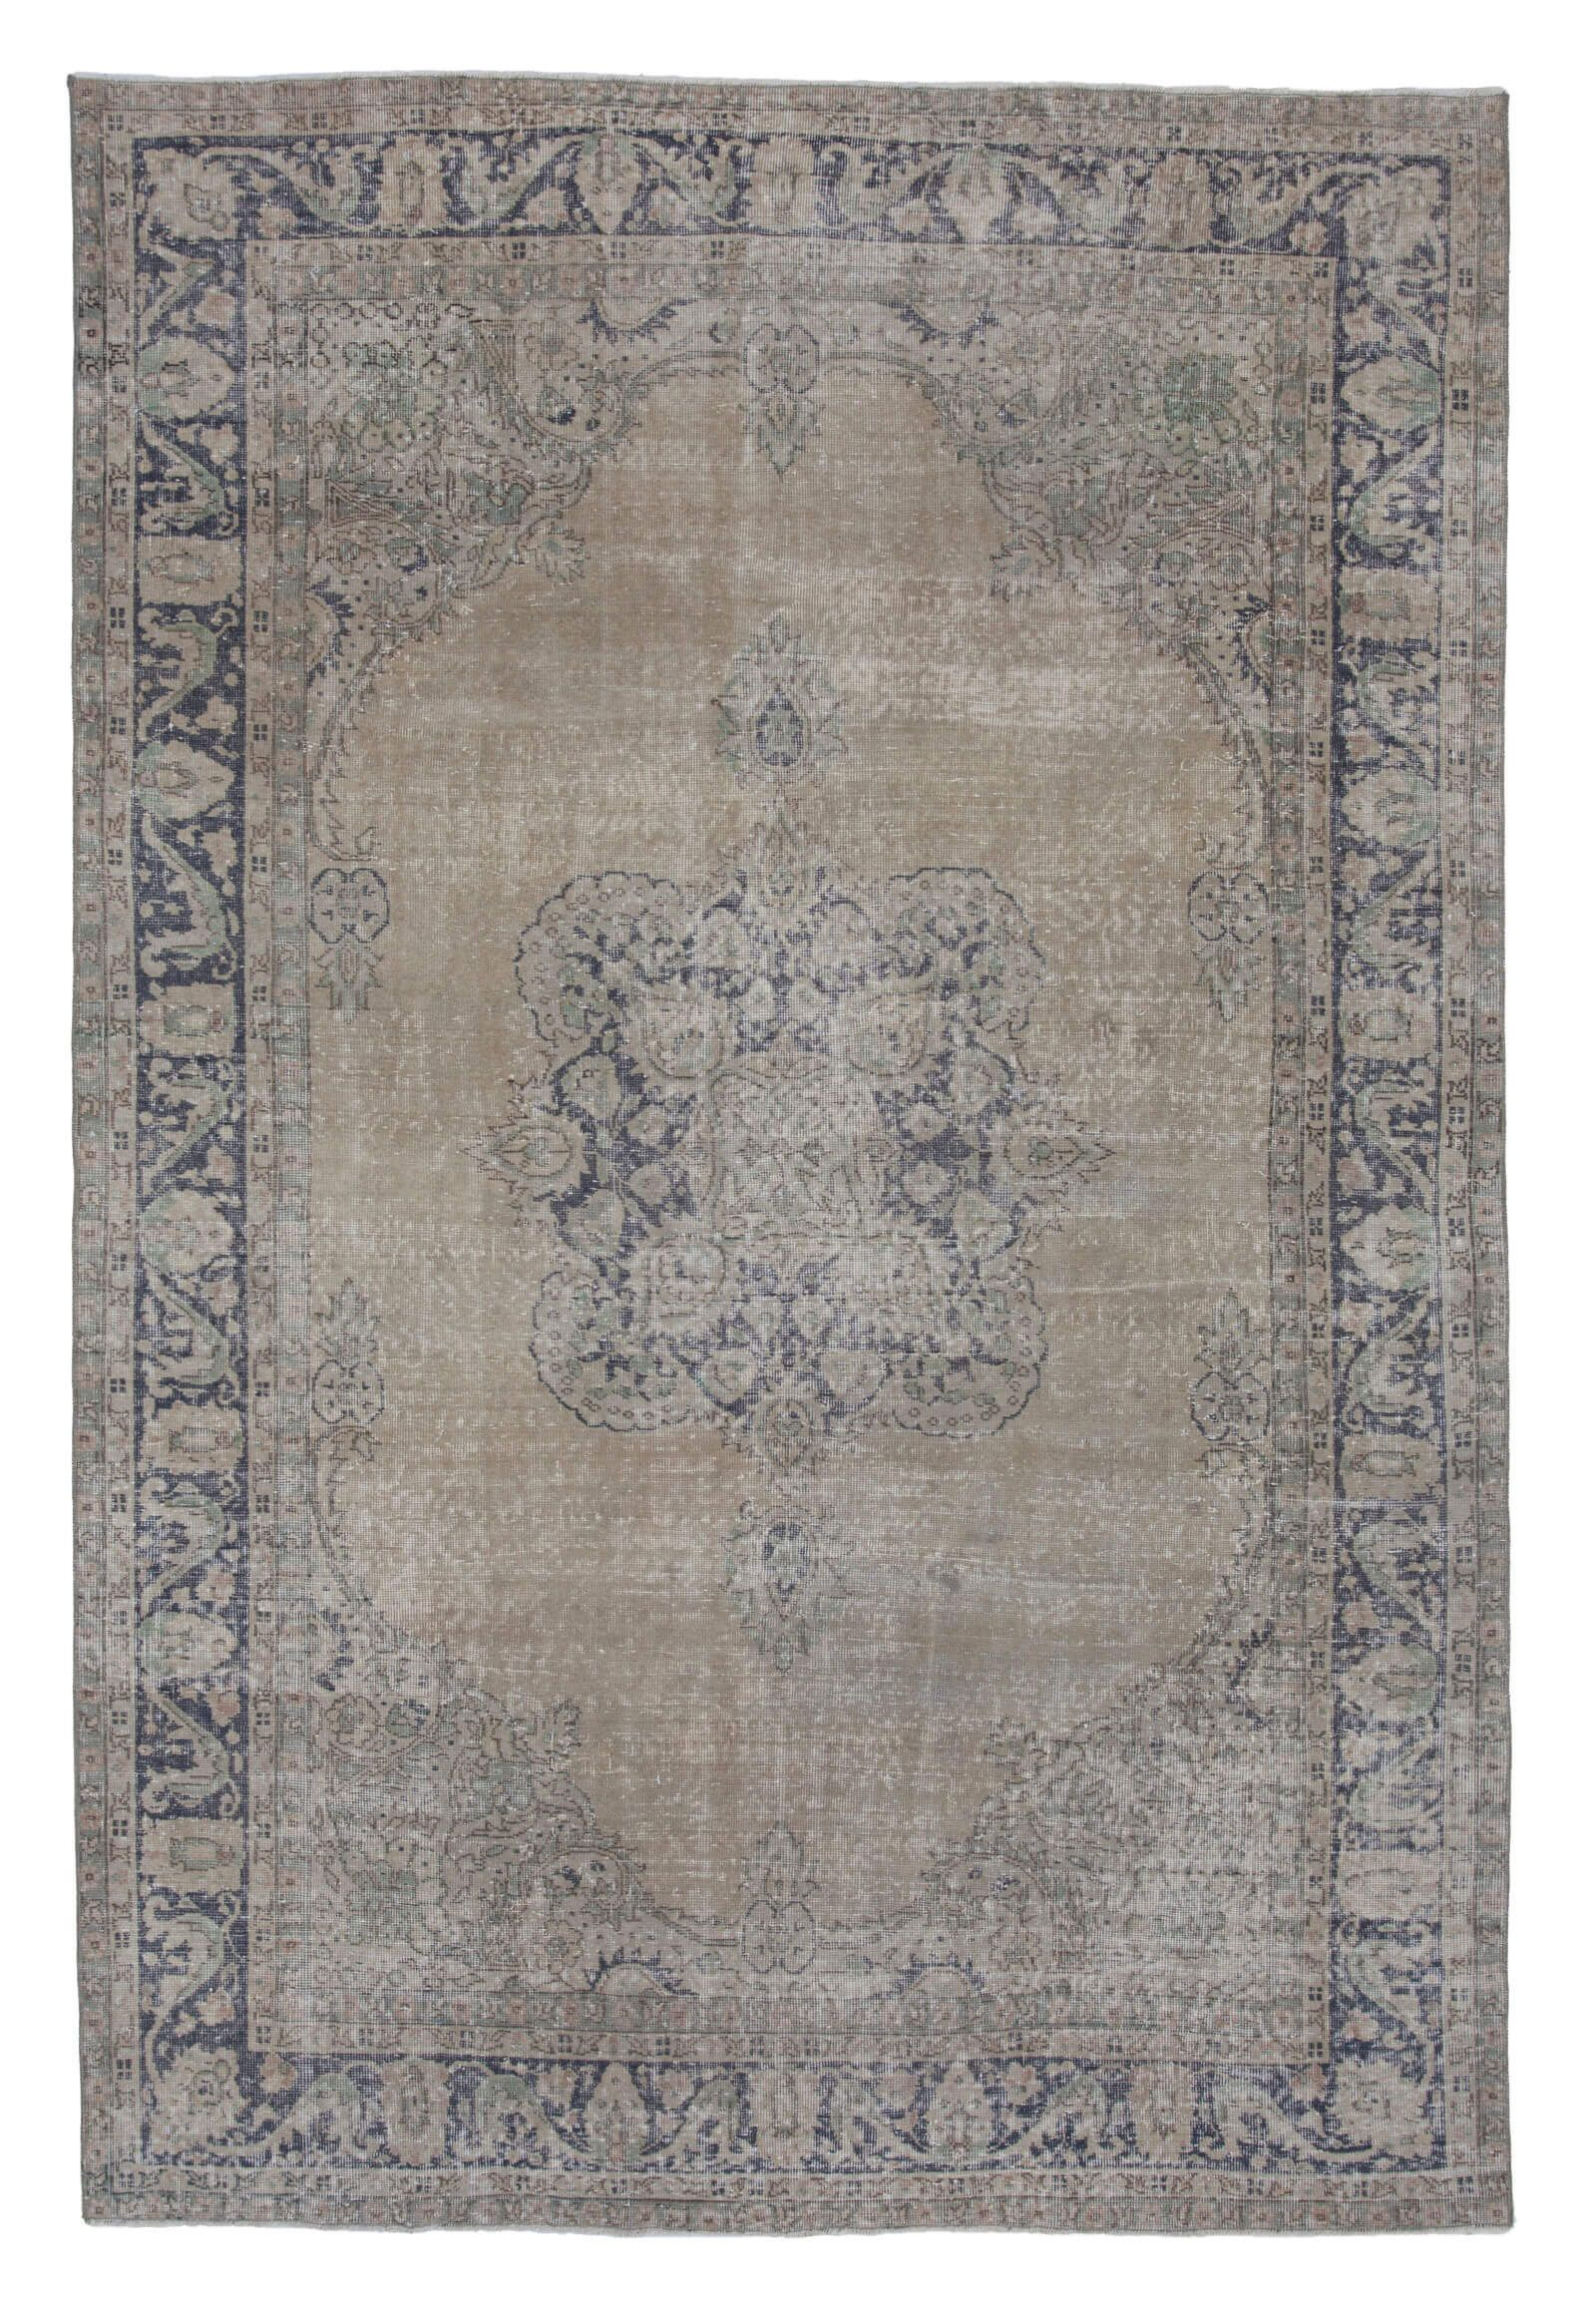 7x10 Beige Turkish Vintage Area Rug - 4741